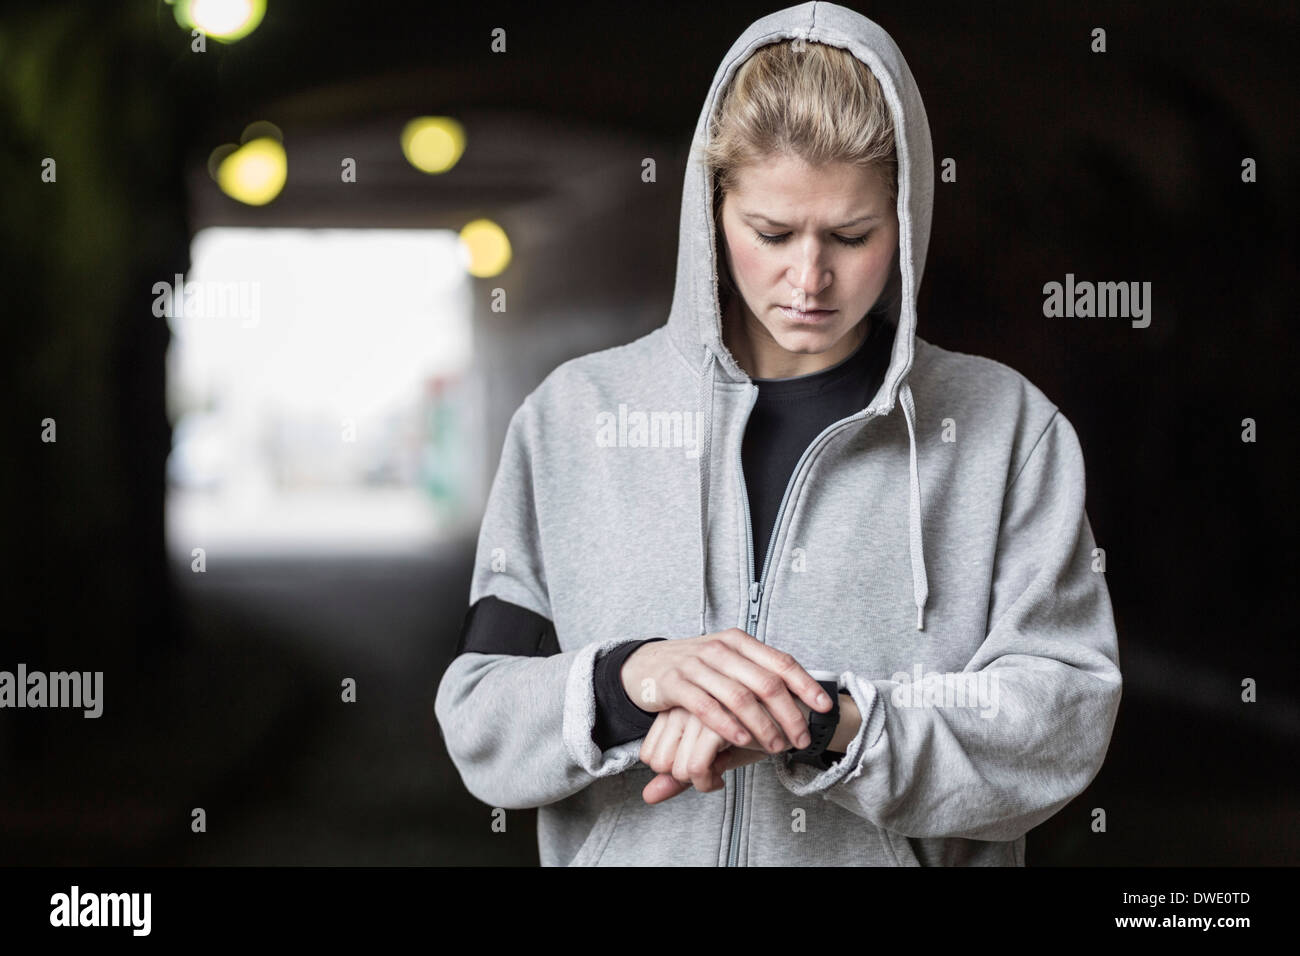 Female jogger checking time in tunnel Stock Photo